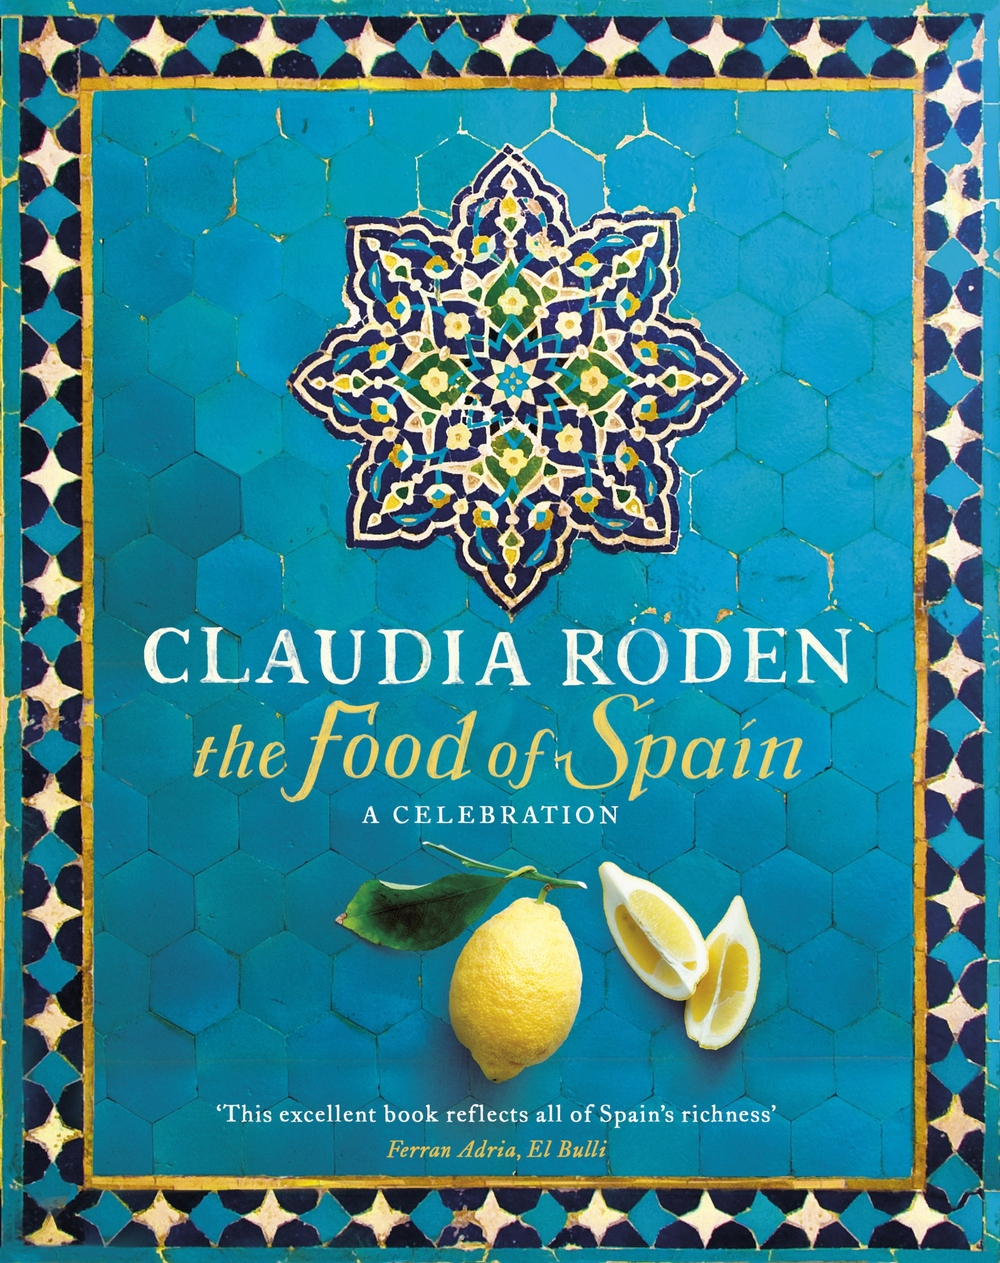 The Food of Spain - Claudia Roden Photography Jason Lowe